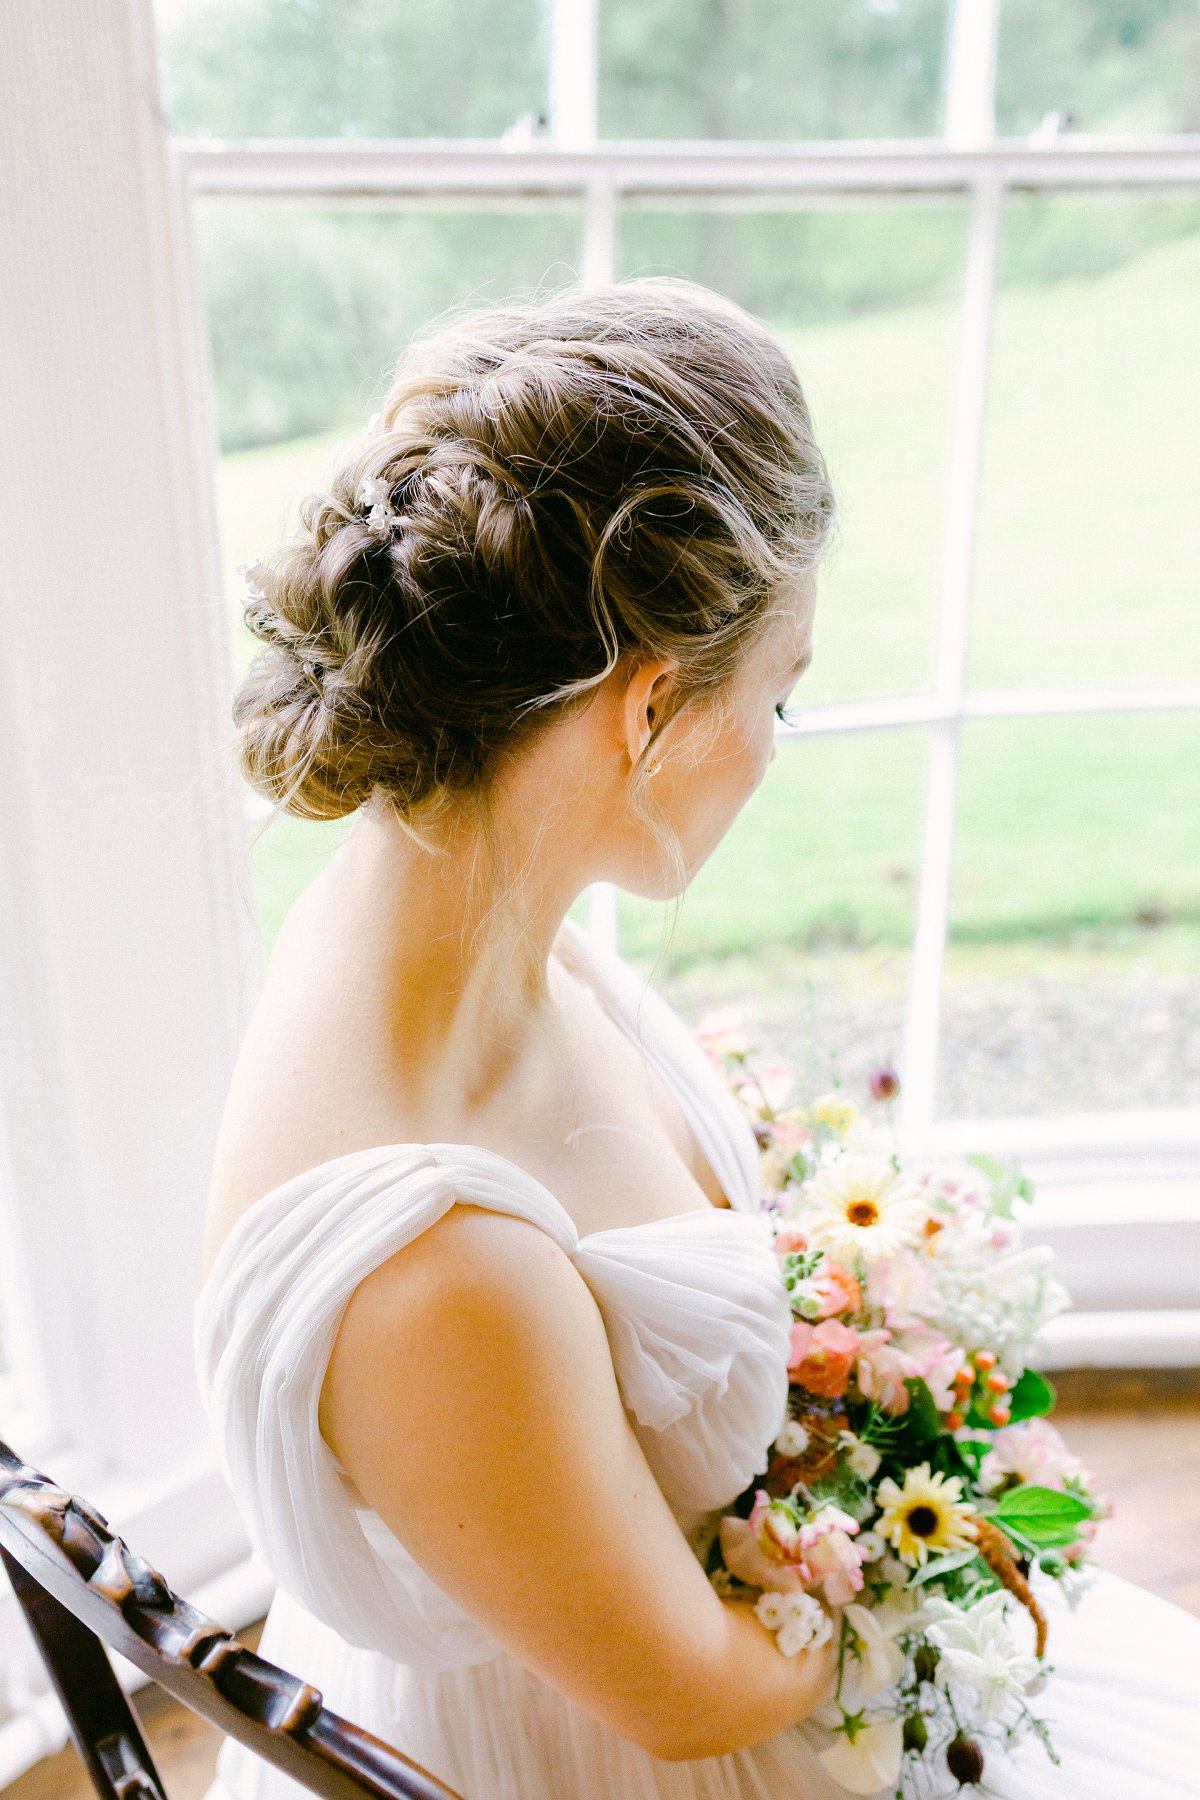 A Styled Wedding Shoot at Town Head Estate Windermere (c) Ailsa Reeve Photography (9)